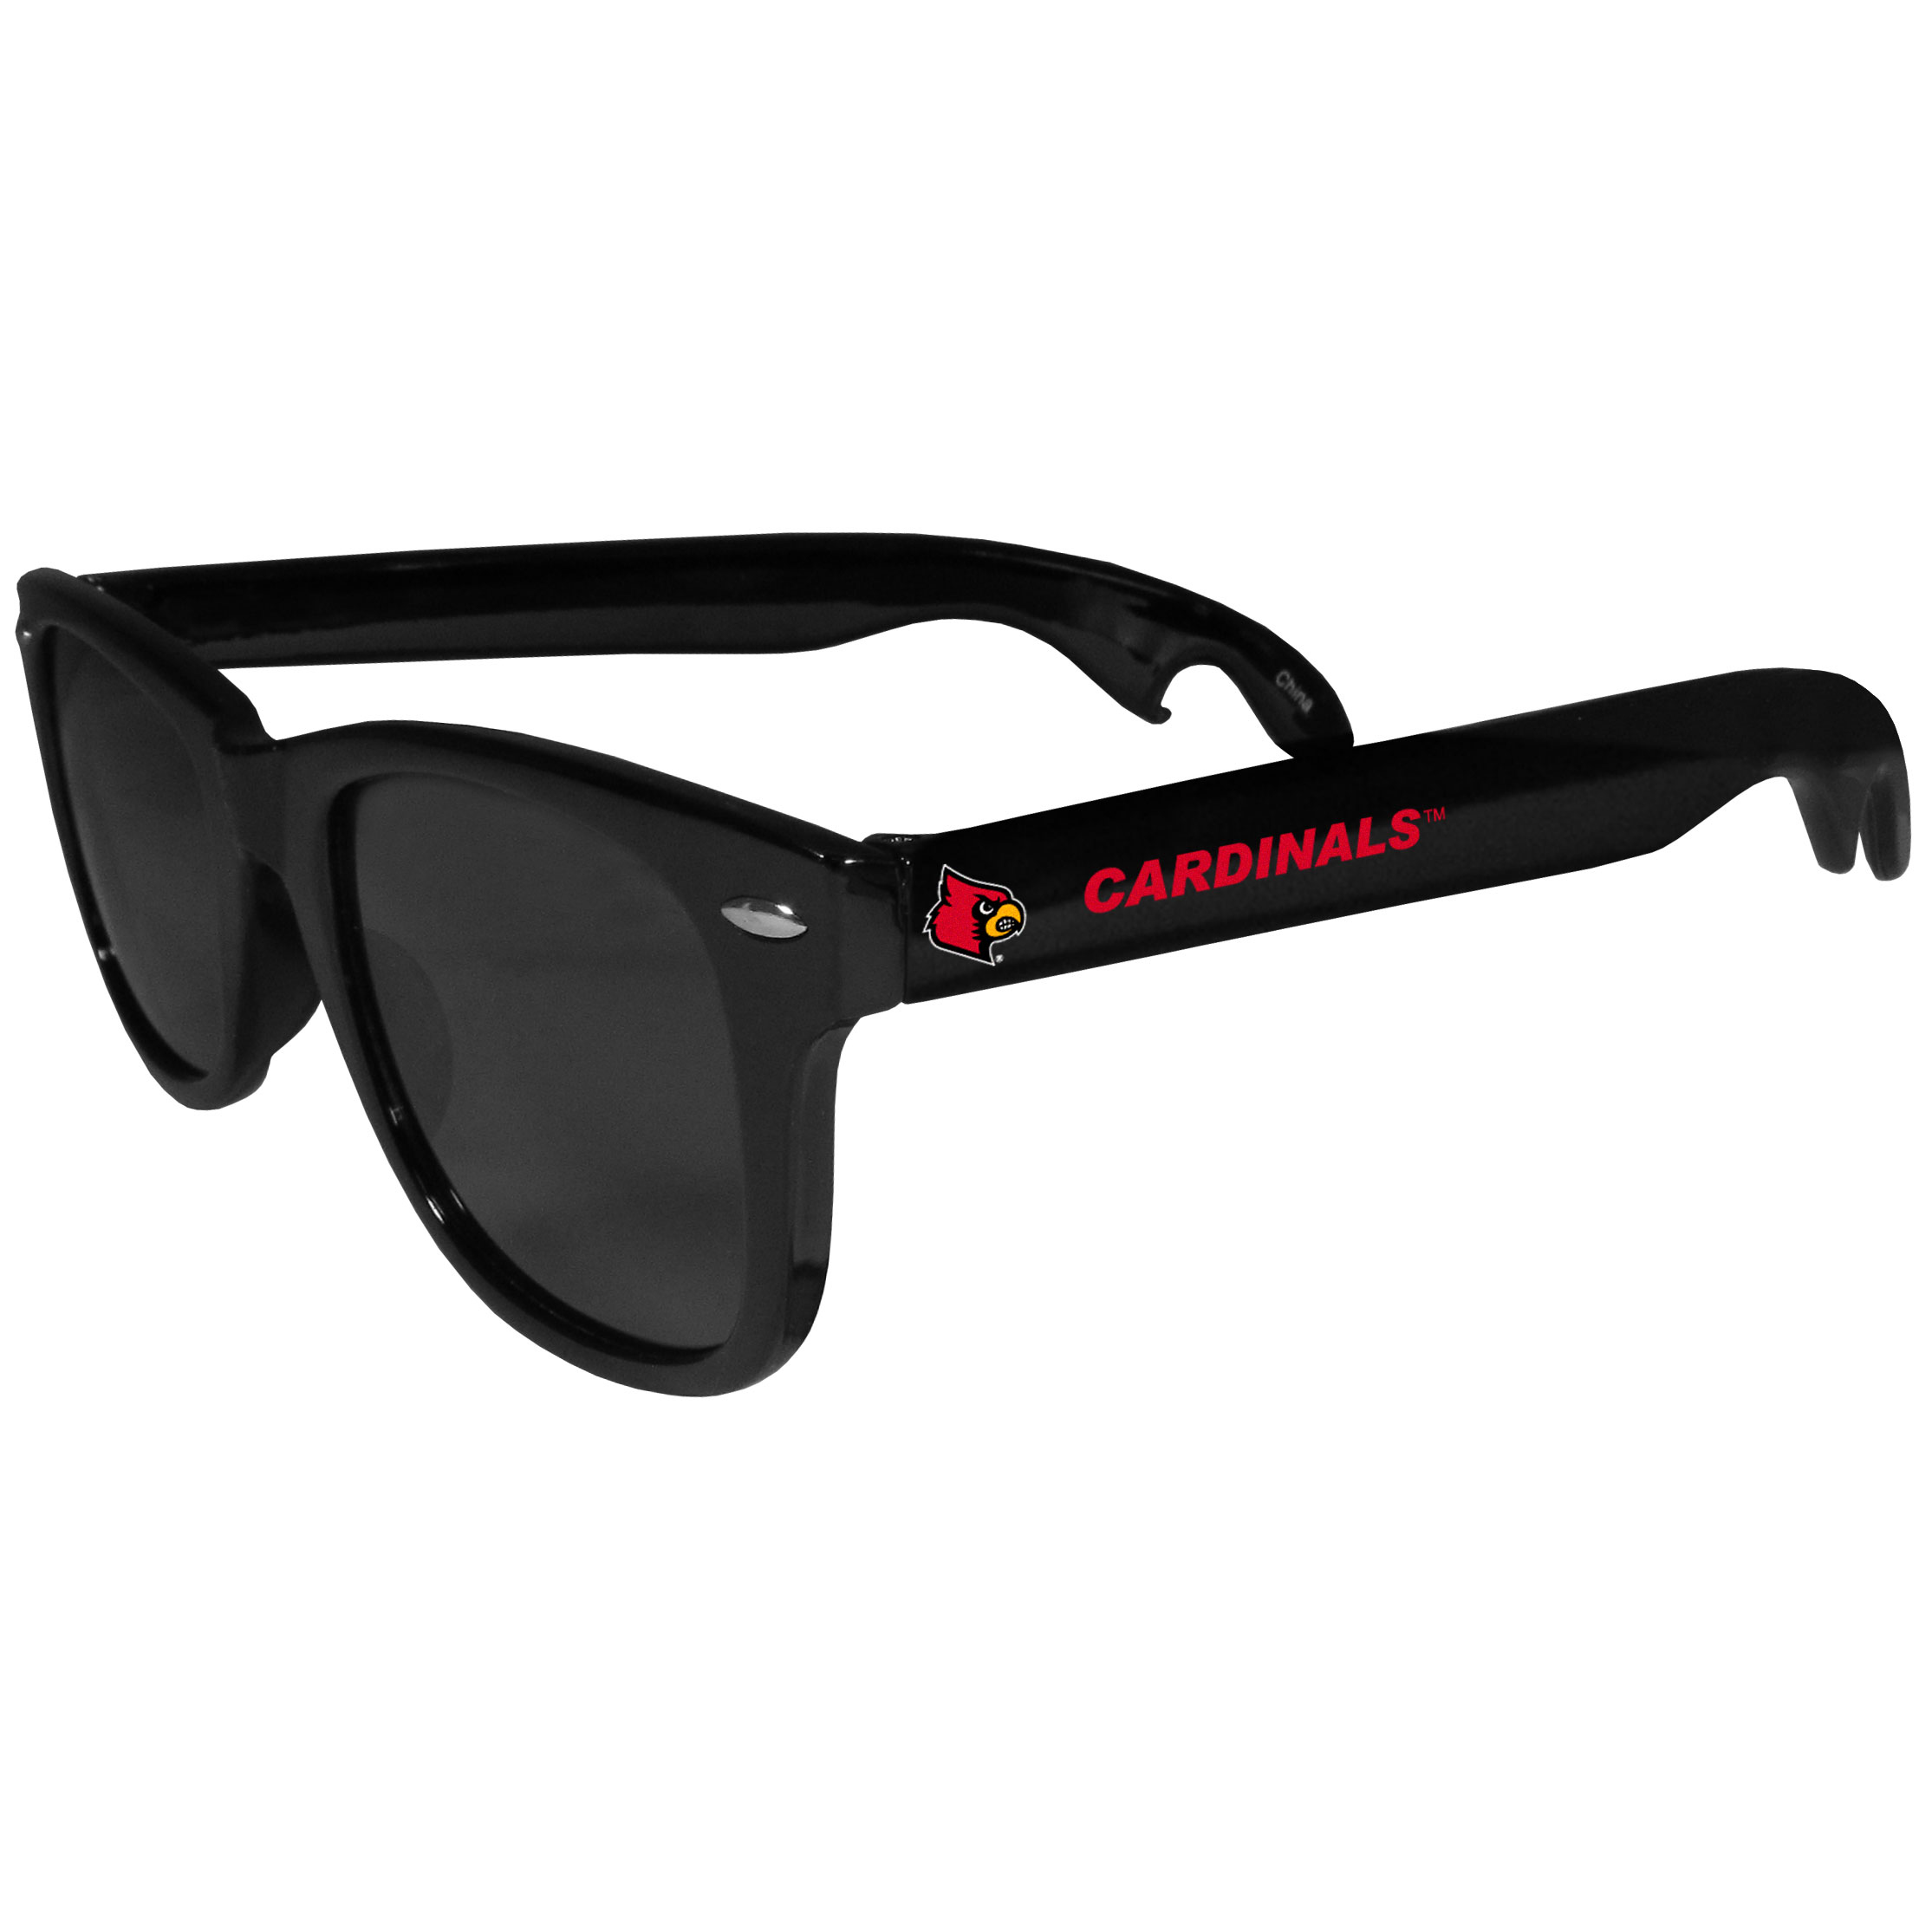 Louisville Cardinals Beachfarer Bottle Opener Sunglasses - Seriously, these sunglasses open bottles! Keep the party going with these amazing Louisville Cardinals bottle opener sunglasses. The stylish retro frames feature team designs on the arms and functional bottle openers on the end of the arms. Whether you are at the beach or having a backyard BBQ on game day, these shades will keep your eyes protected with 100% UVA/UVB protection and keep you hydrated with the handy bottle opener arms.